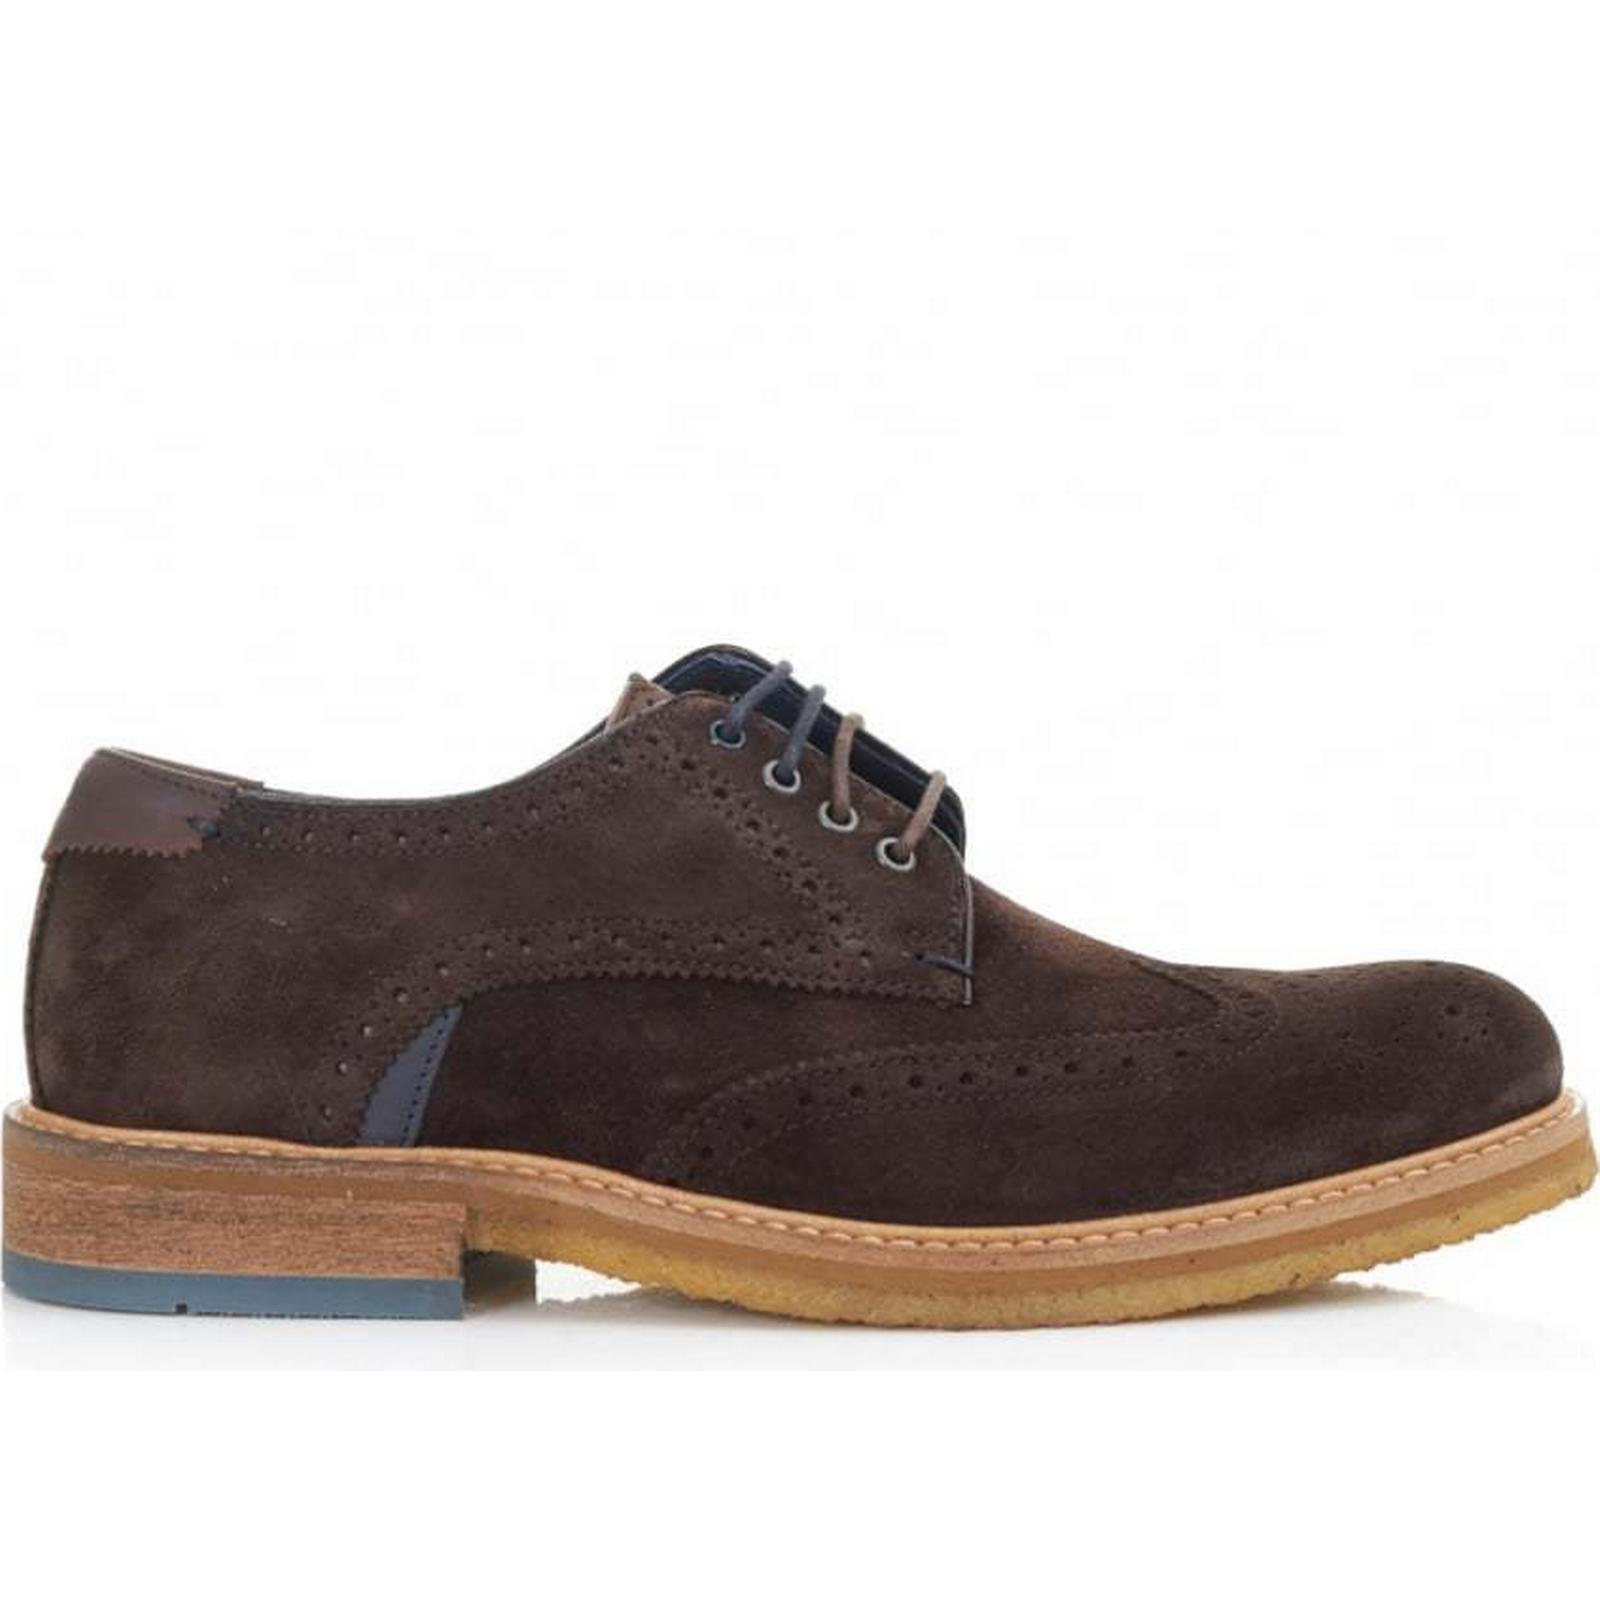 Ted Brogues Baker Prycce Crepe Sole Brogues Ted Colour: BROWN, Size: 6 e58e33